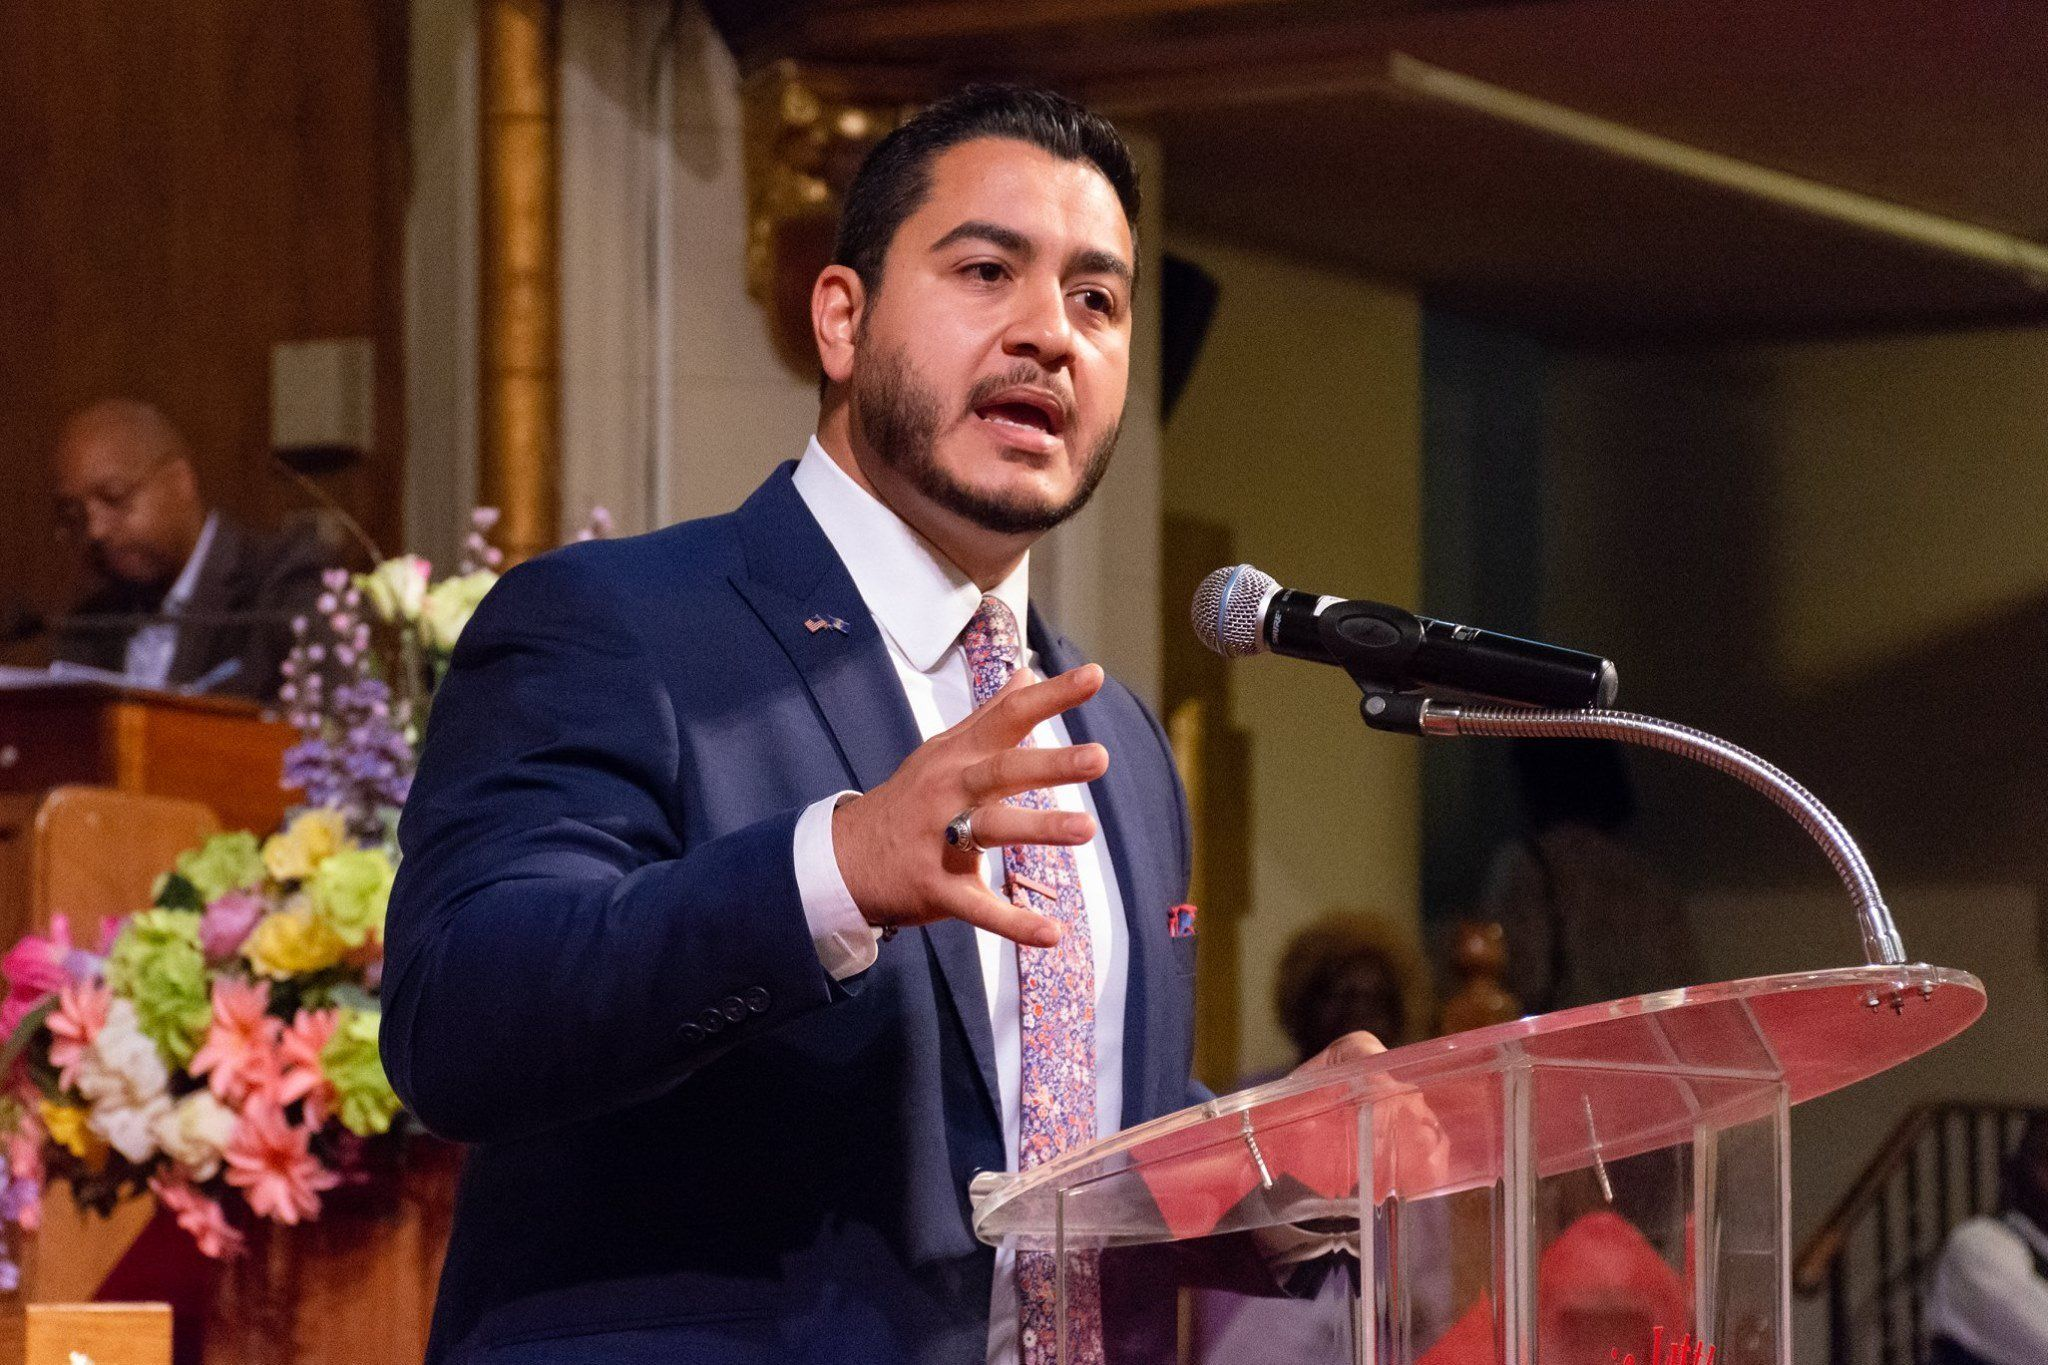 Democrat Abdul El-Sayed, the former Detroit health commissioner, is running a progressive bid for governor of Michigan.